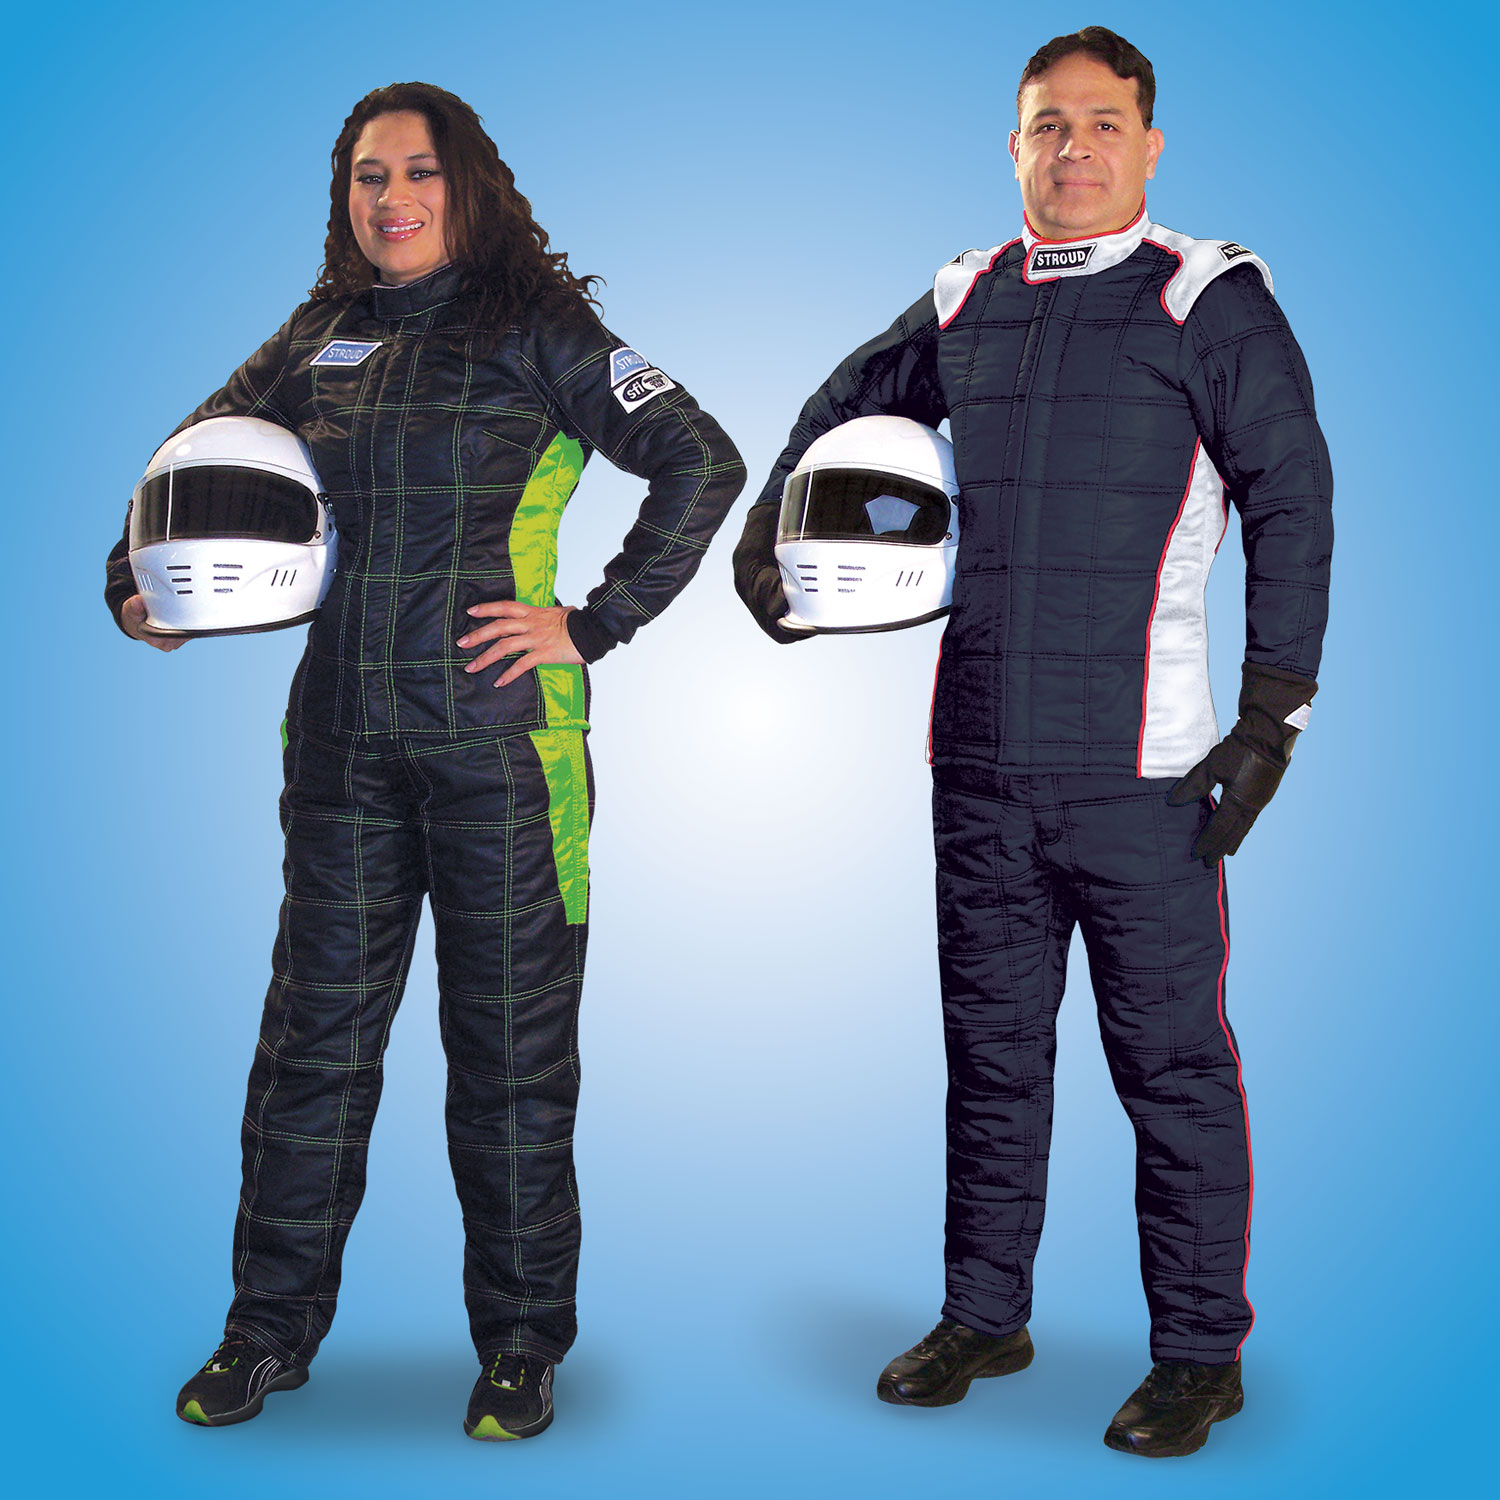 Hercules and Athena Custom Firesuits